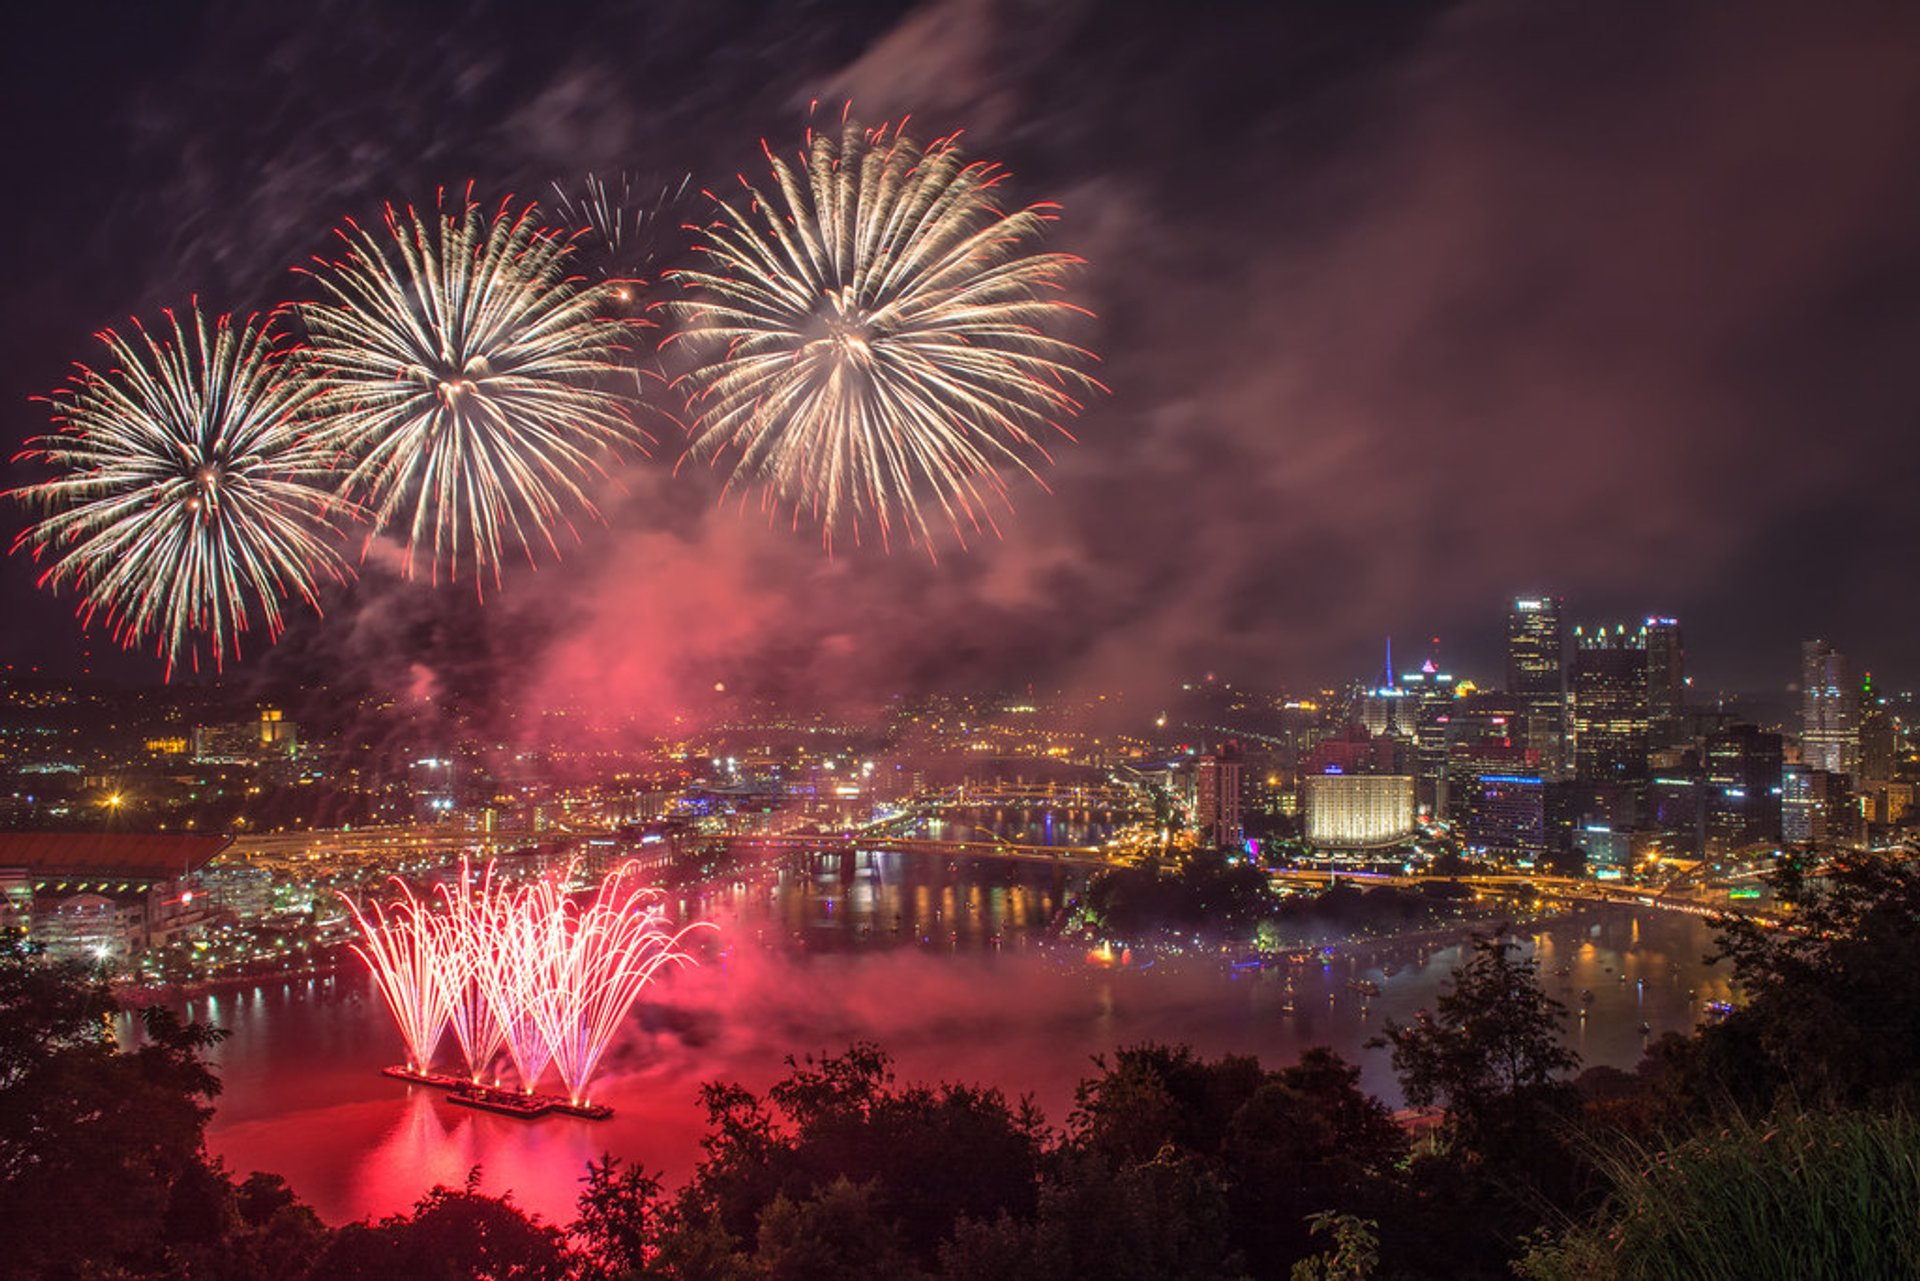 Fireworks above the city of Pittsburgh on July 4th 2020